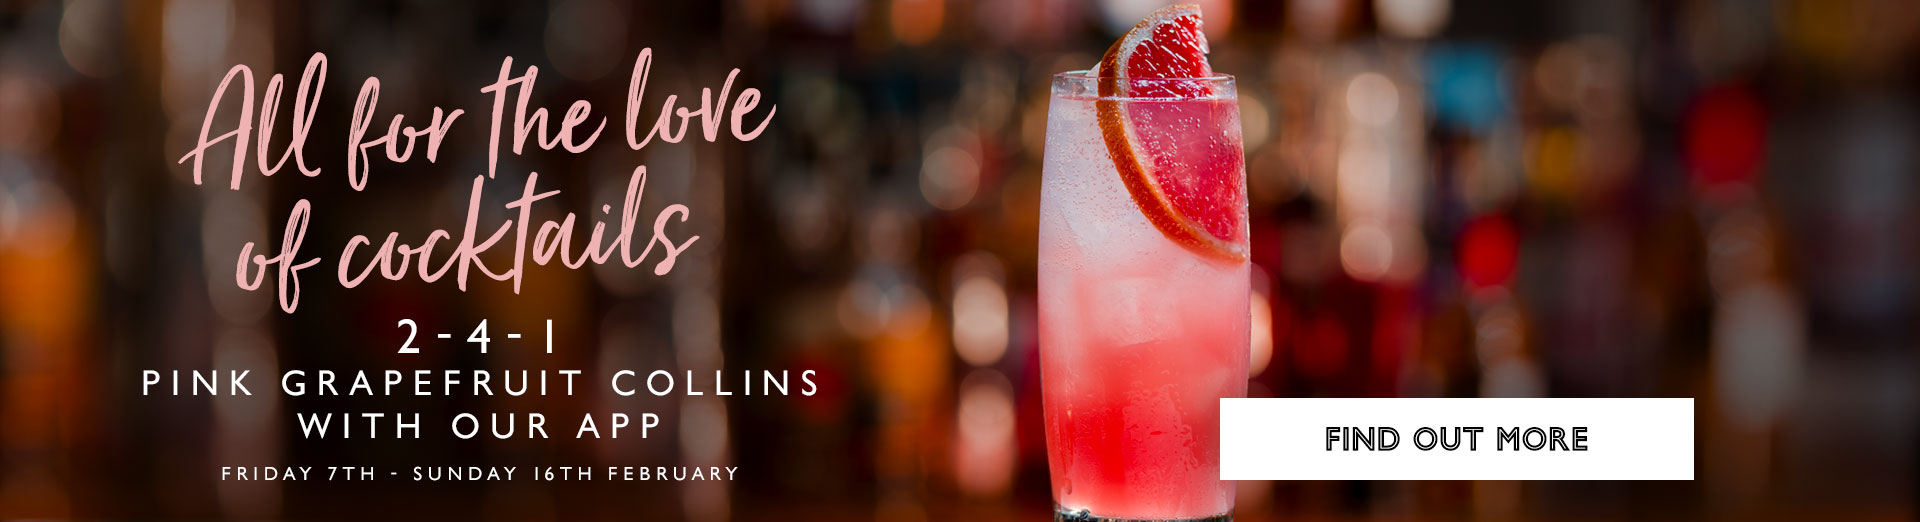 Galentine's at All Bar One Newhall Street Birmingham